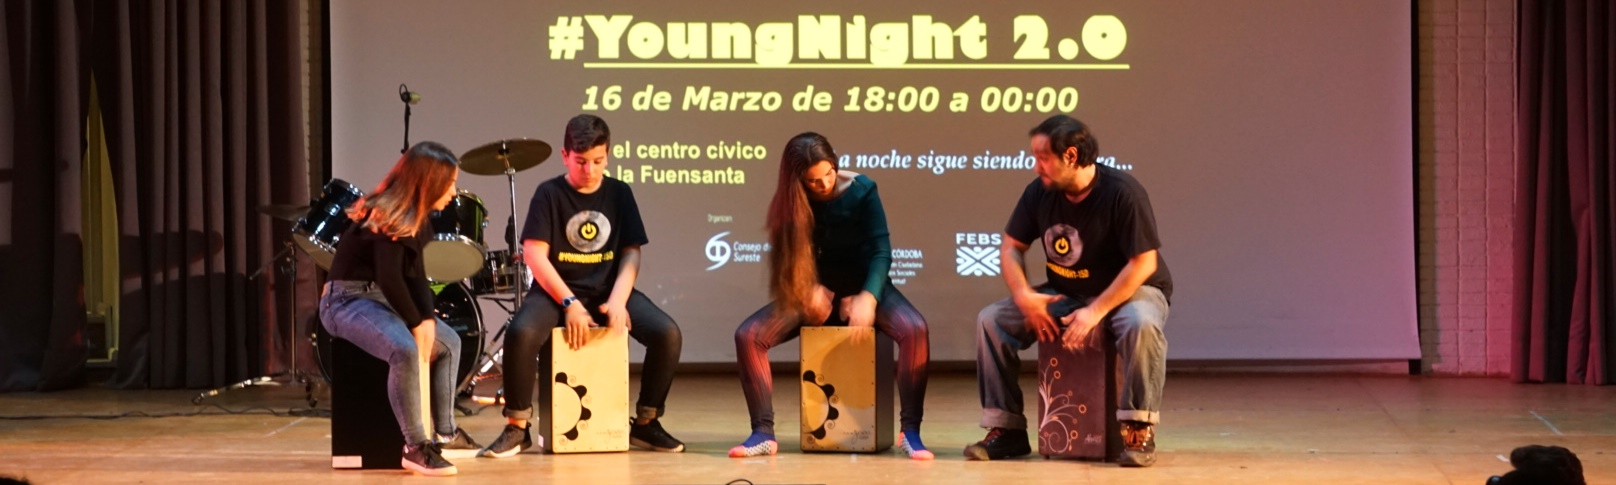 #YOUNGNIGHT 2.0